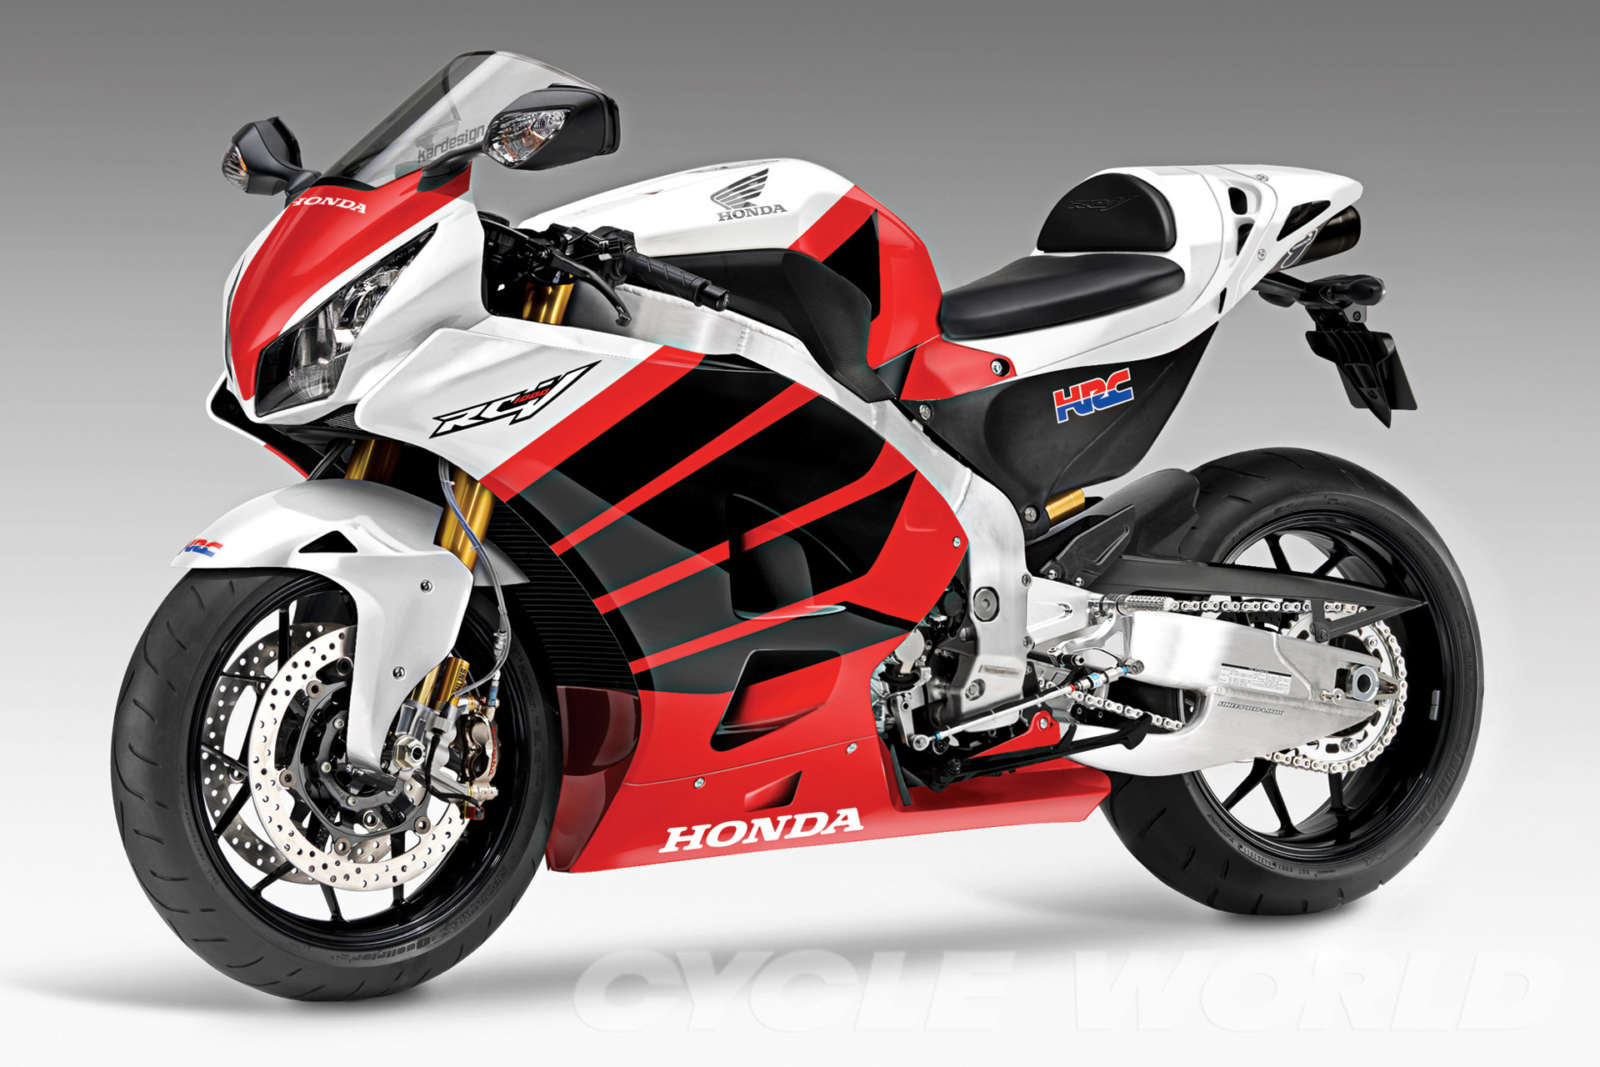 Honda-RC1000V-MotoGP-Replica-Concept-Bike